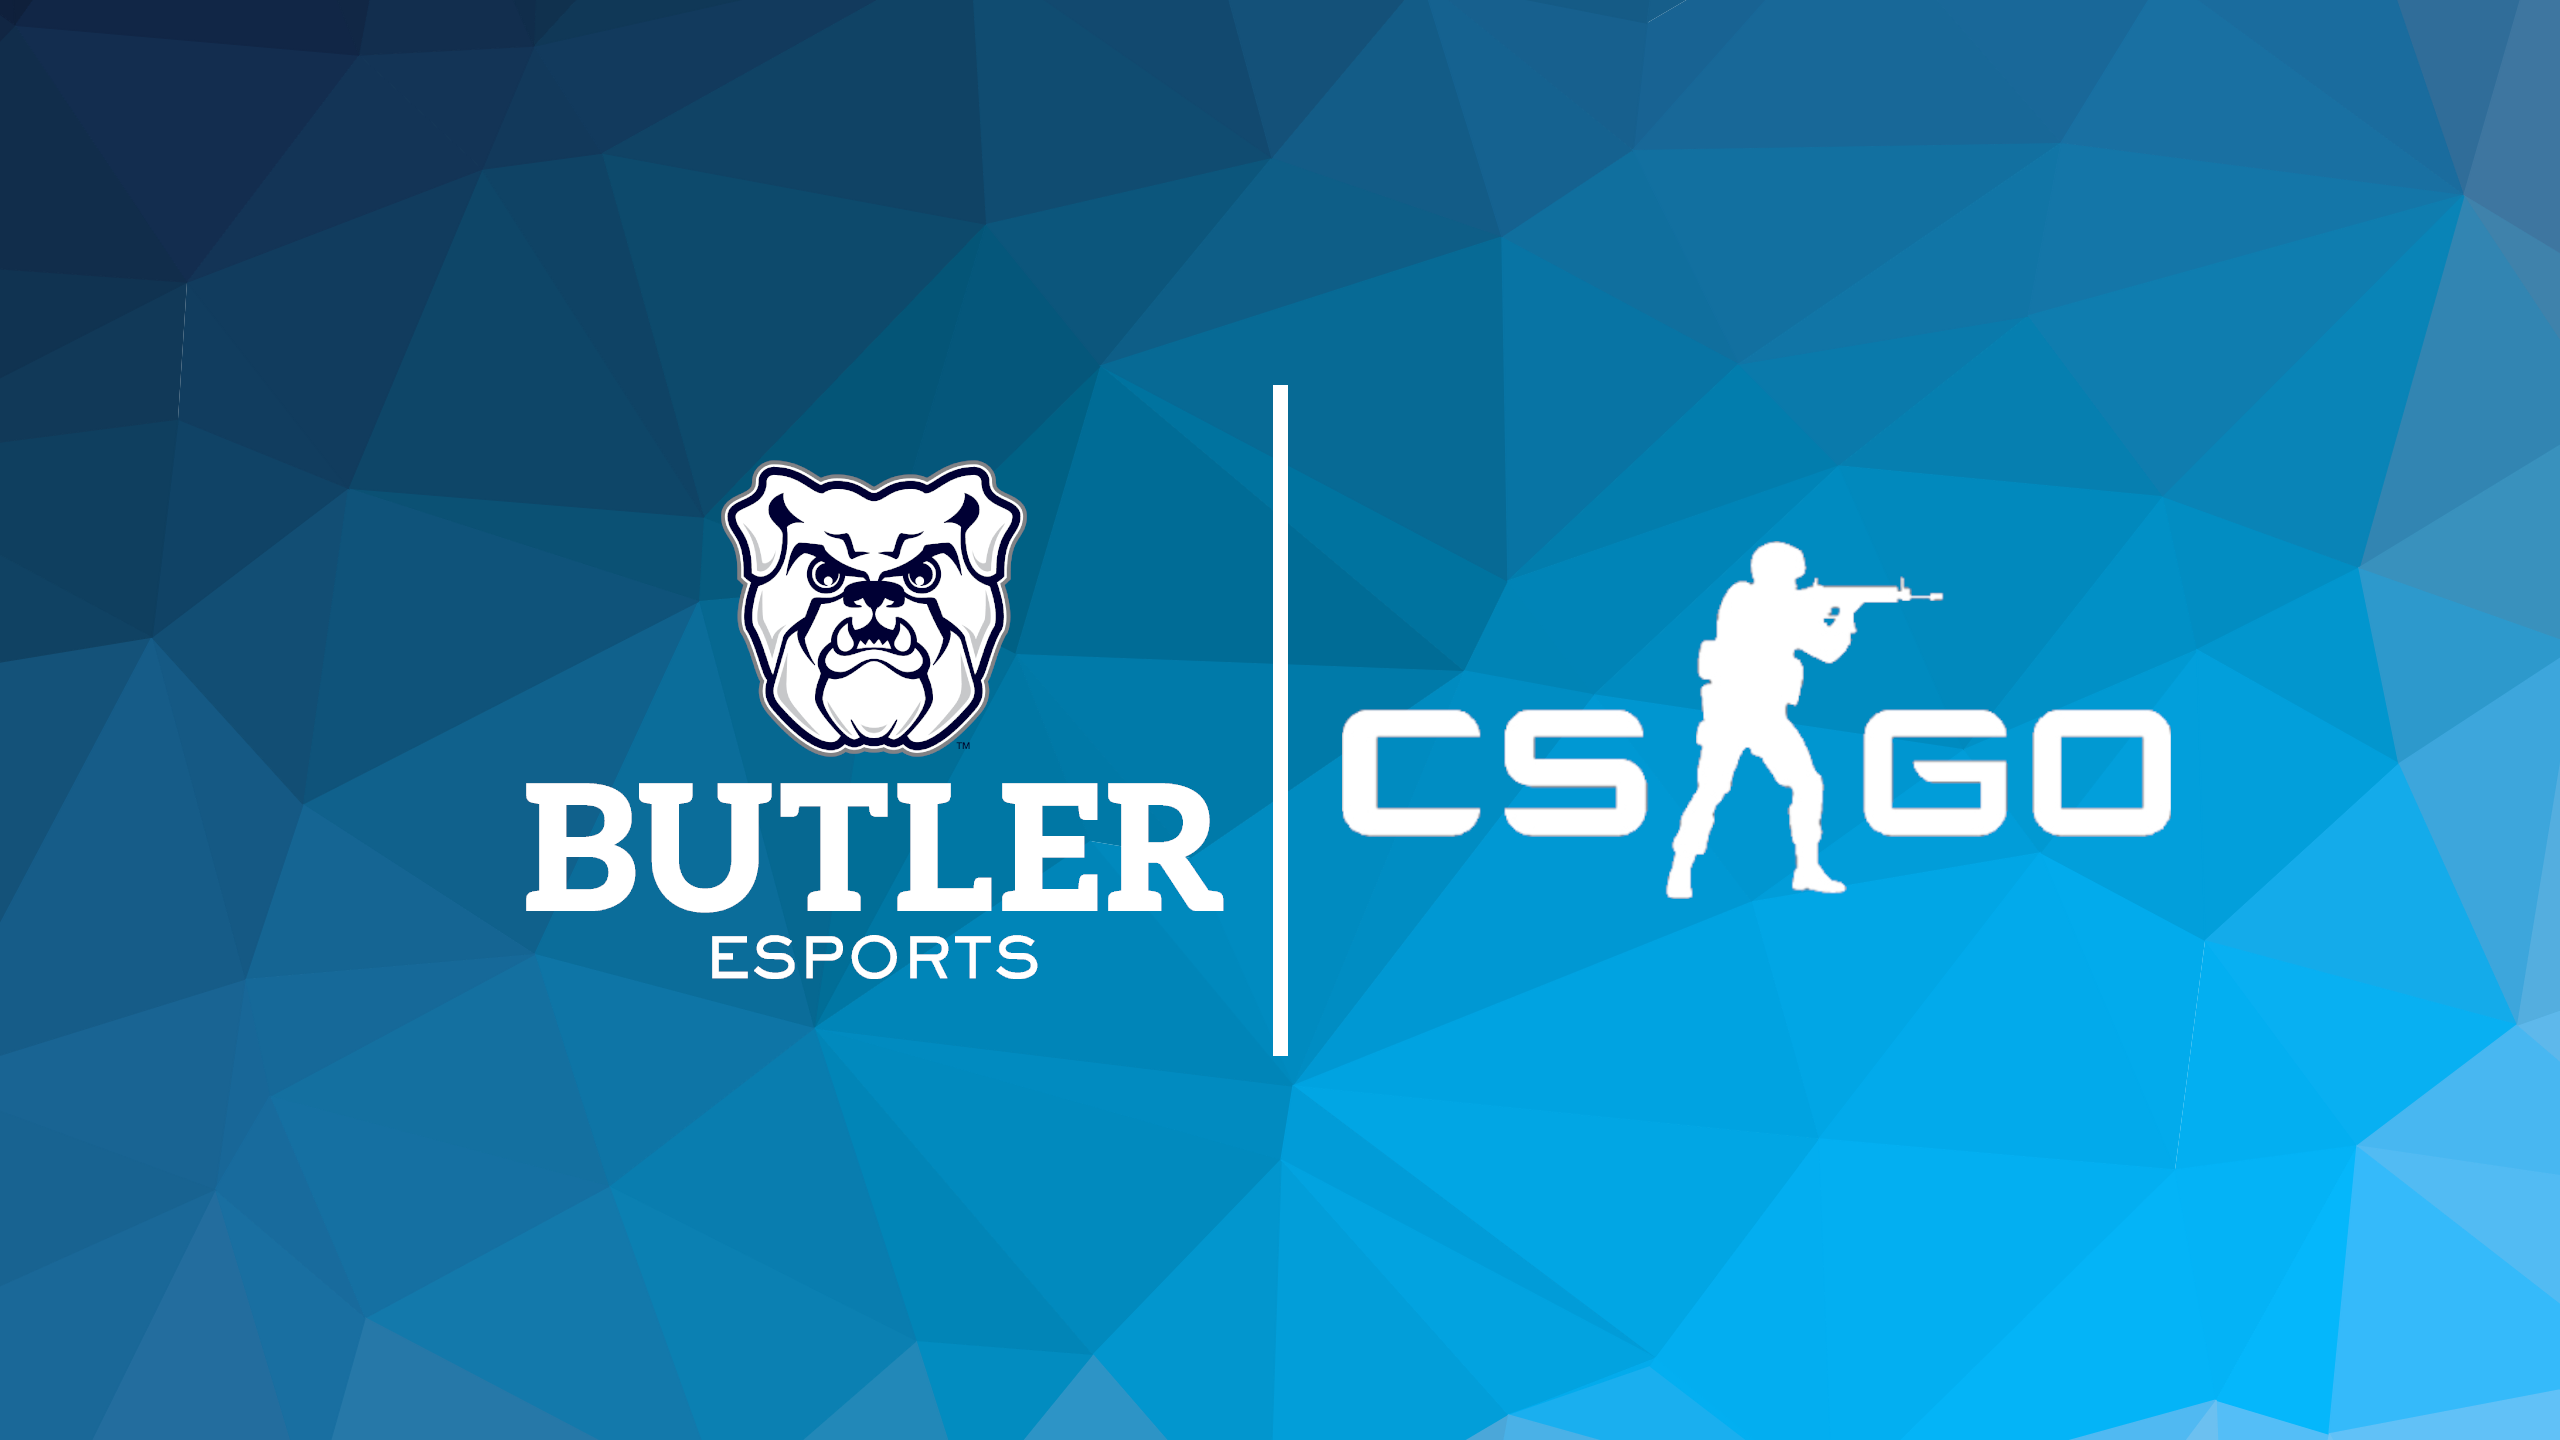 Butler CS:GO vs IUPUI